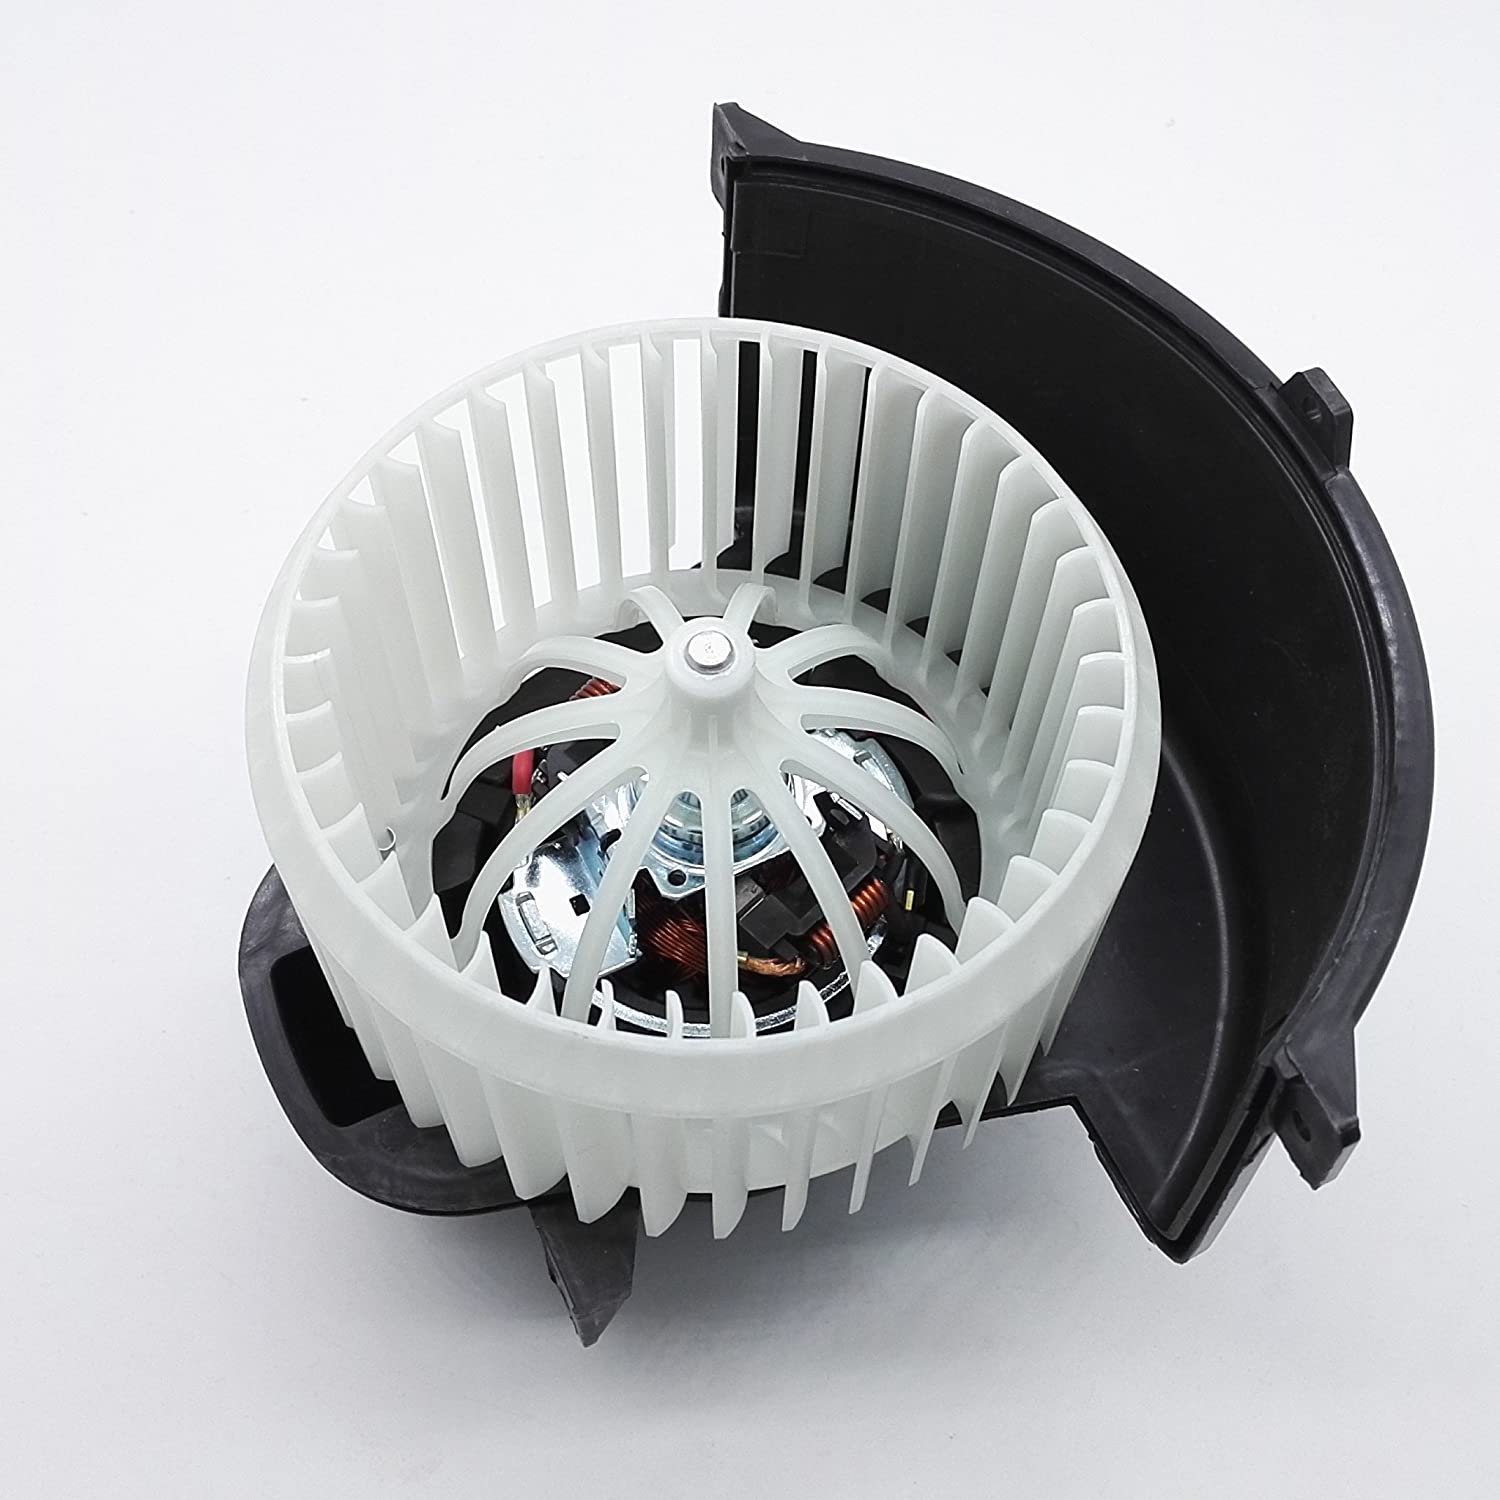 Amazon.com: HVAC Blower Motor Assembly + Cage Front for Audi Q7 VW Touareg Porsche Cayenne: Automotive